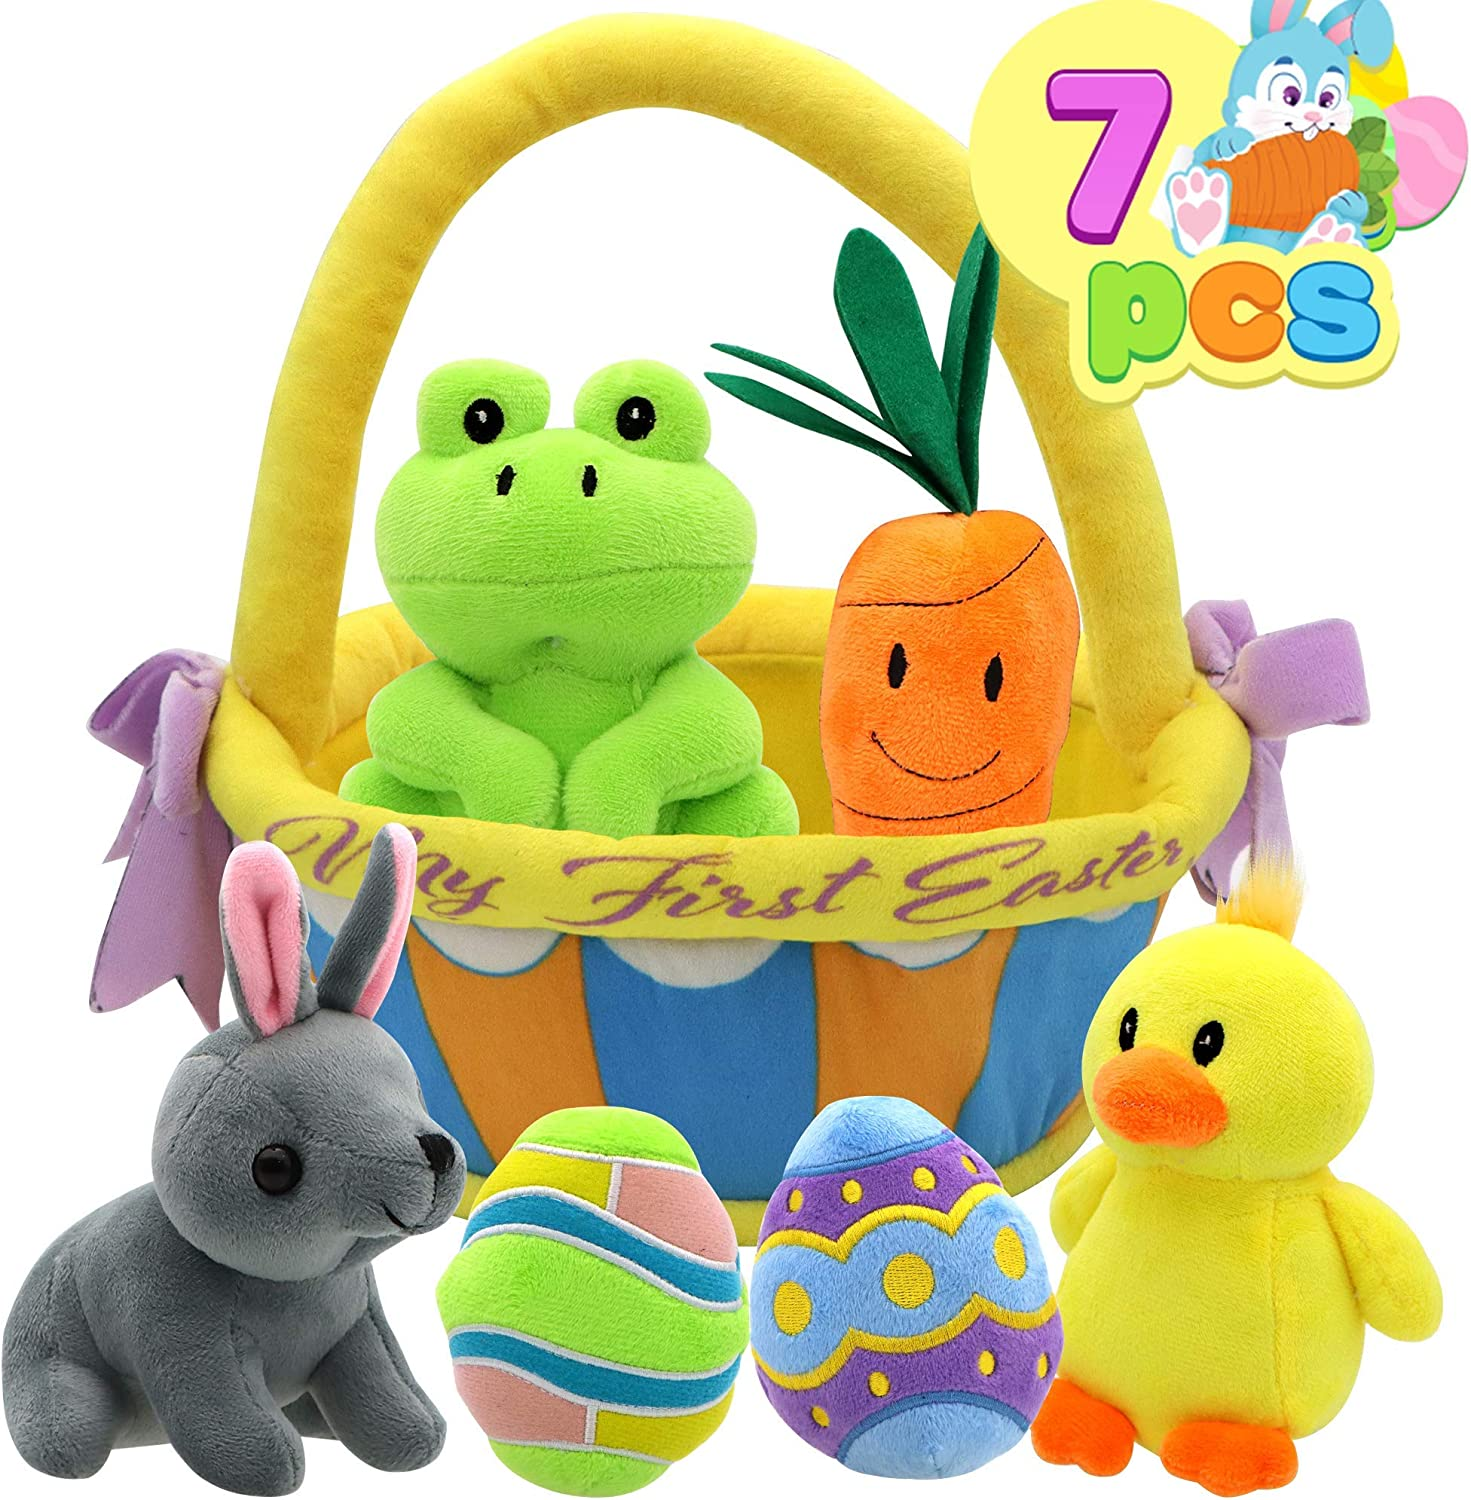 7 Pcs My First Easter Basket Plush Original Style Plushies Playset Basket Stuffers Toys for Easter Party Favors,Plush Easter Basket for Baby, Toddler & Kids of All Ages